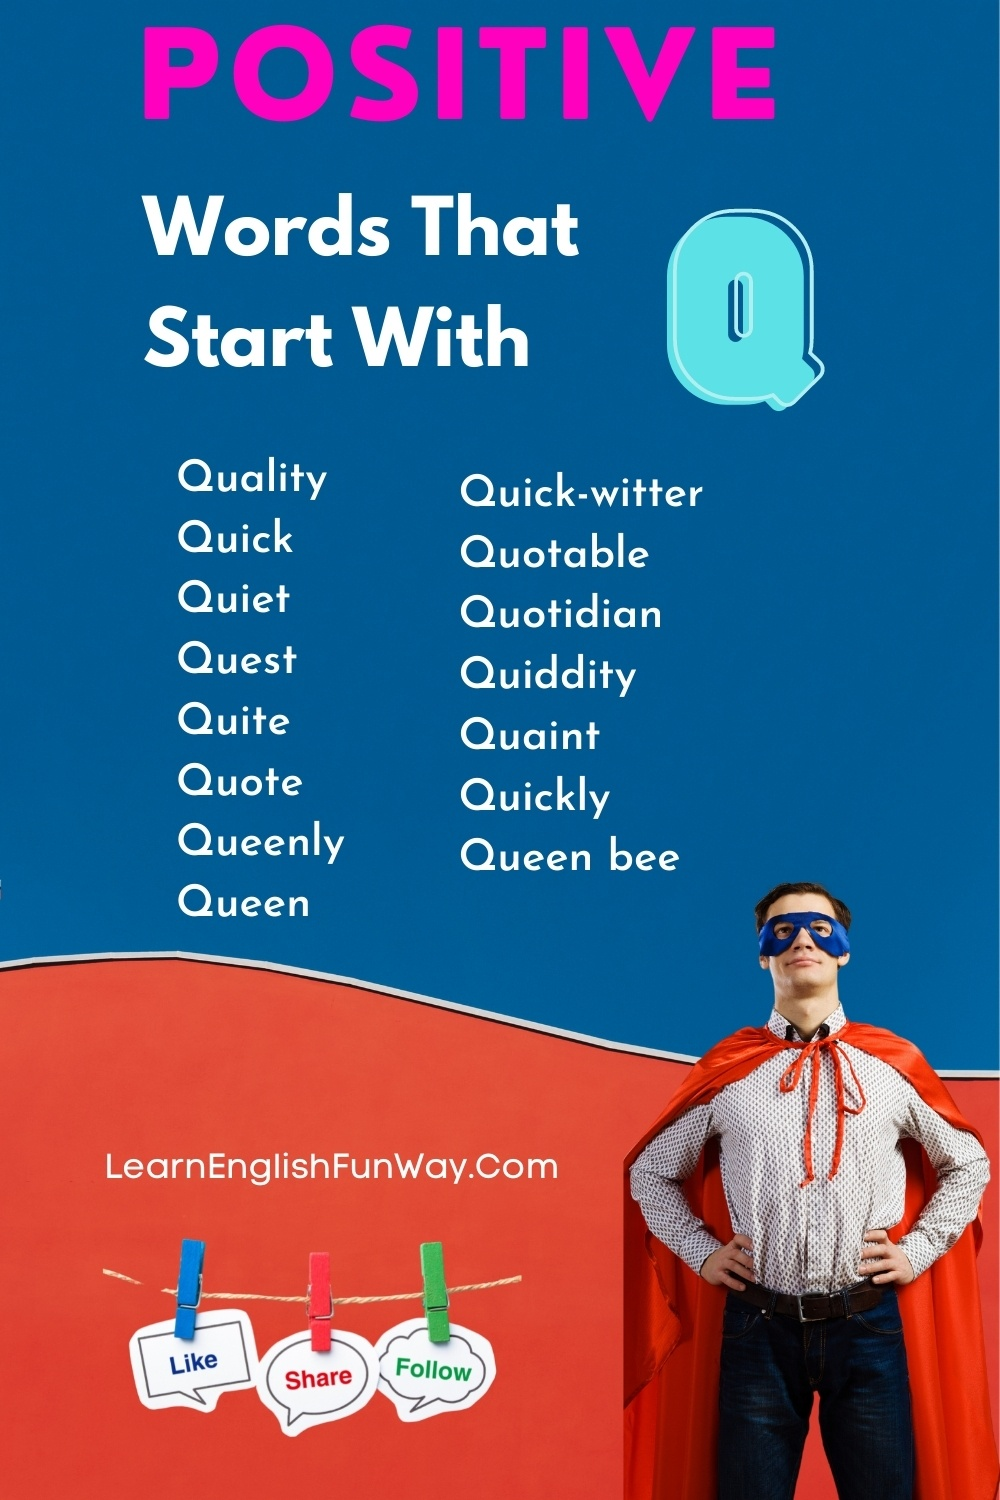 list of positive words that start with Q - Positive Words That Start With Q